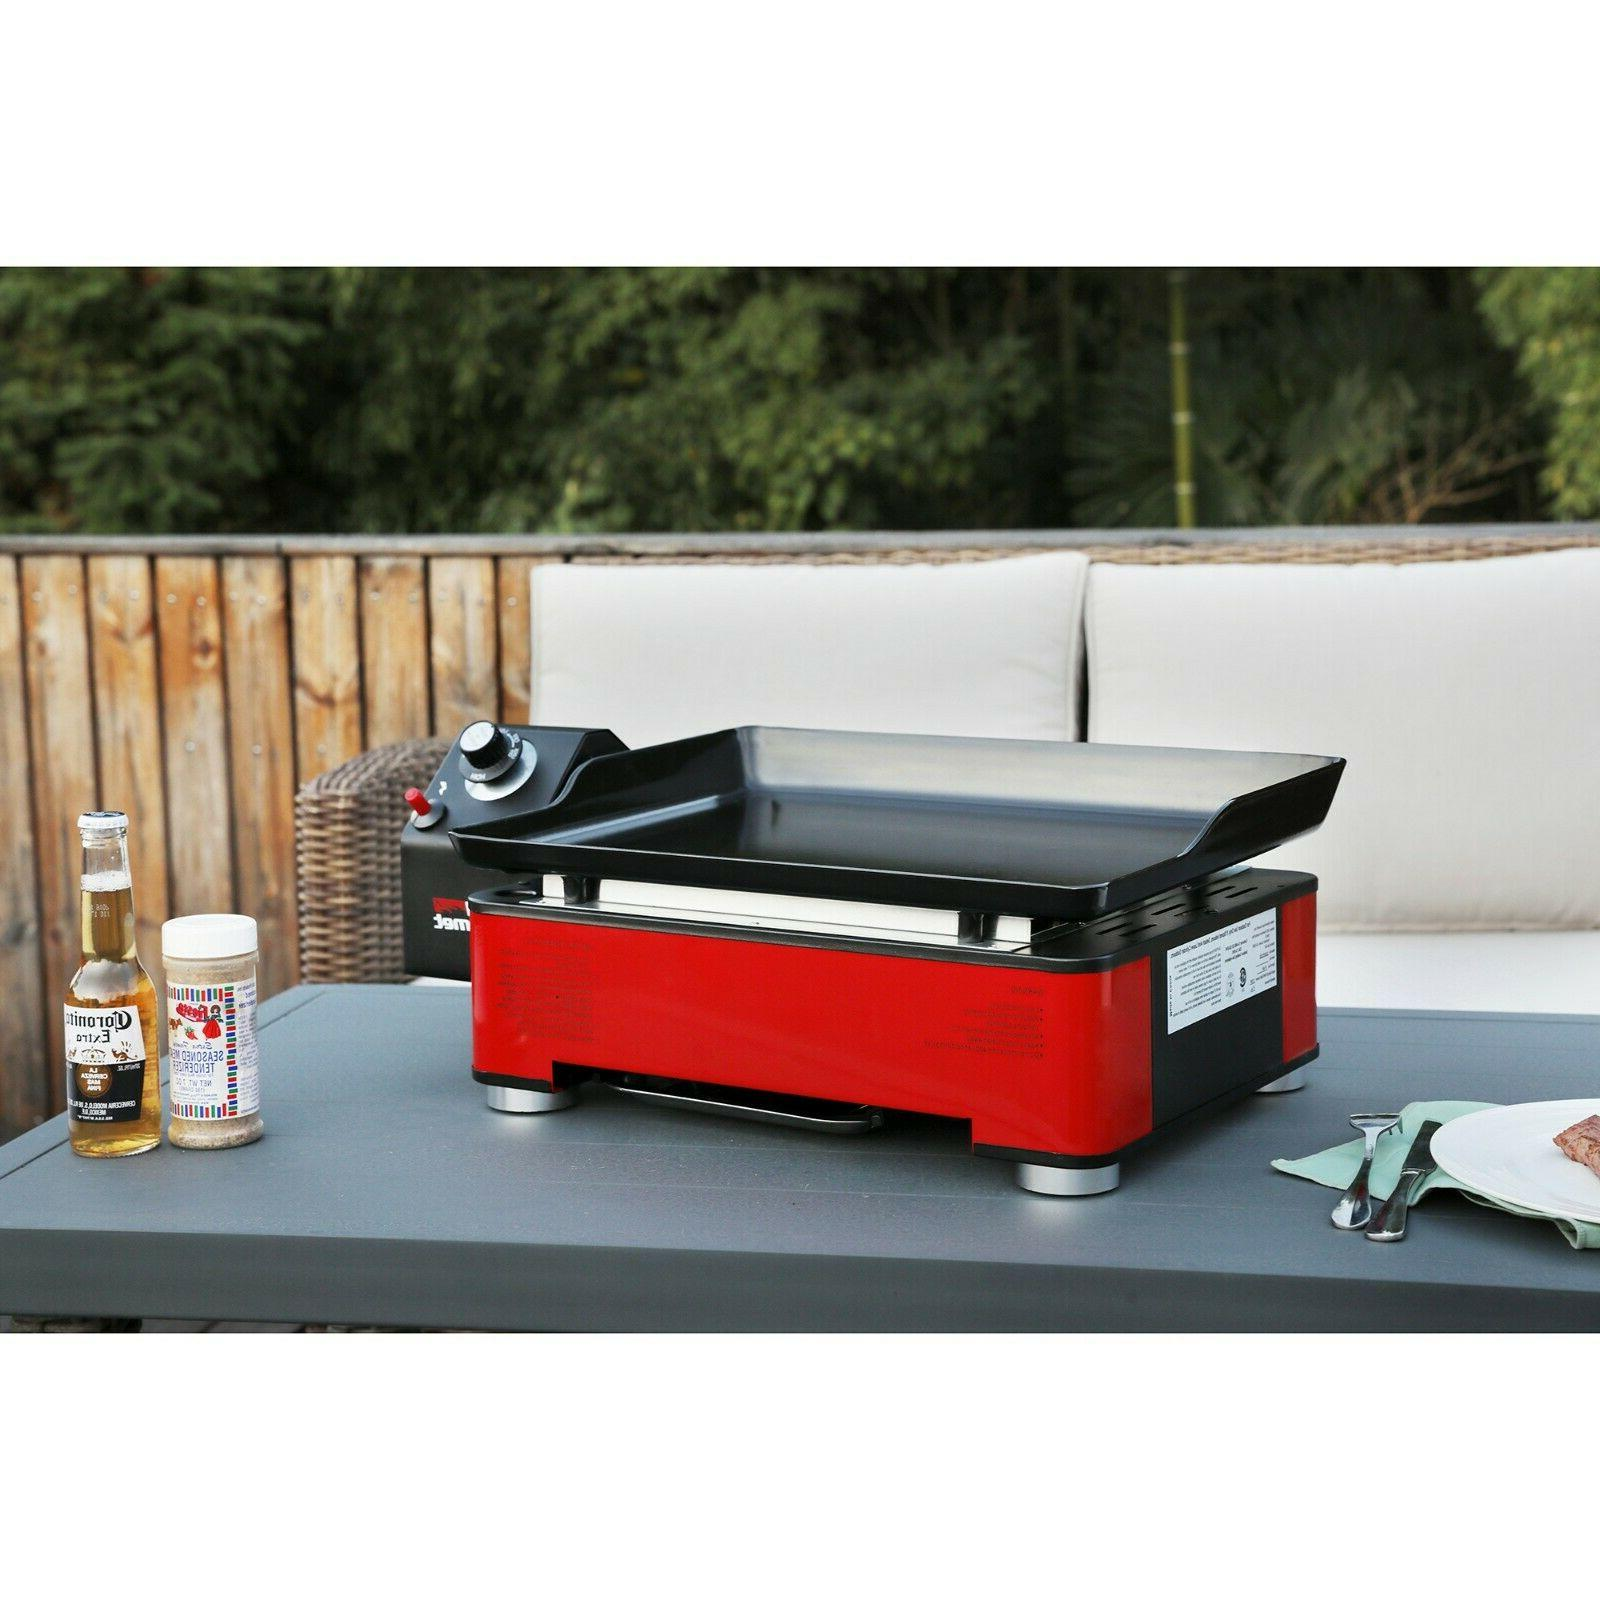 Royal Portable Table Top Propane Grill Griddle 12000BTU